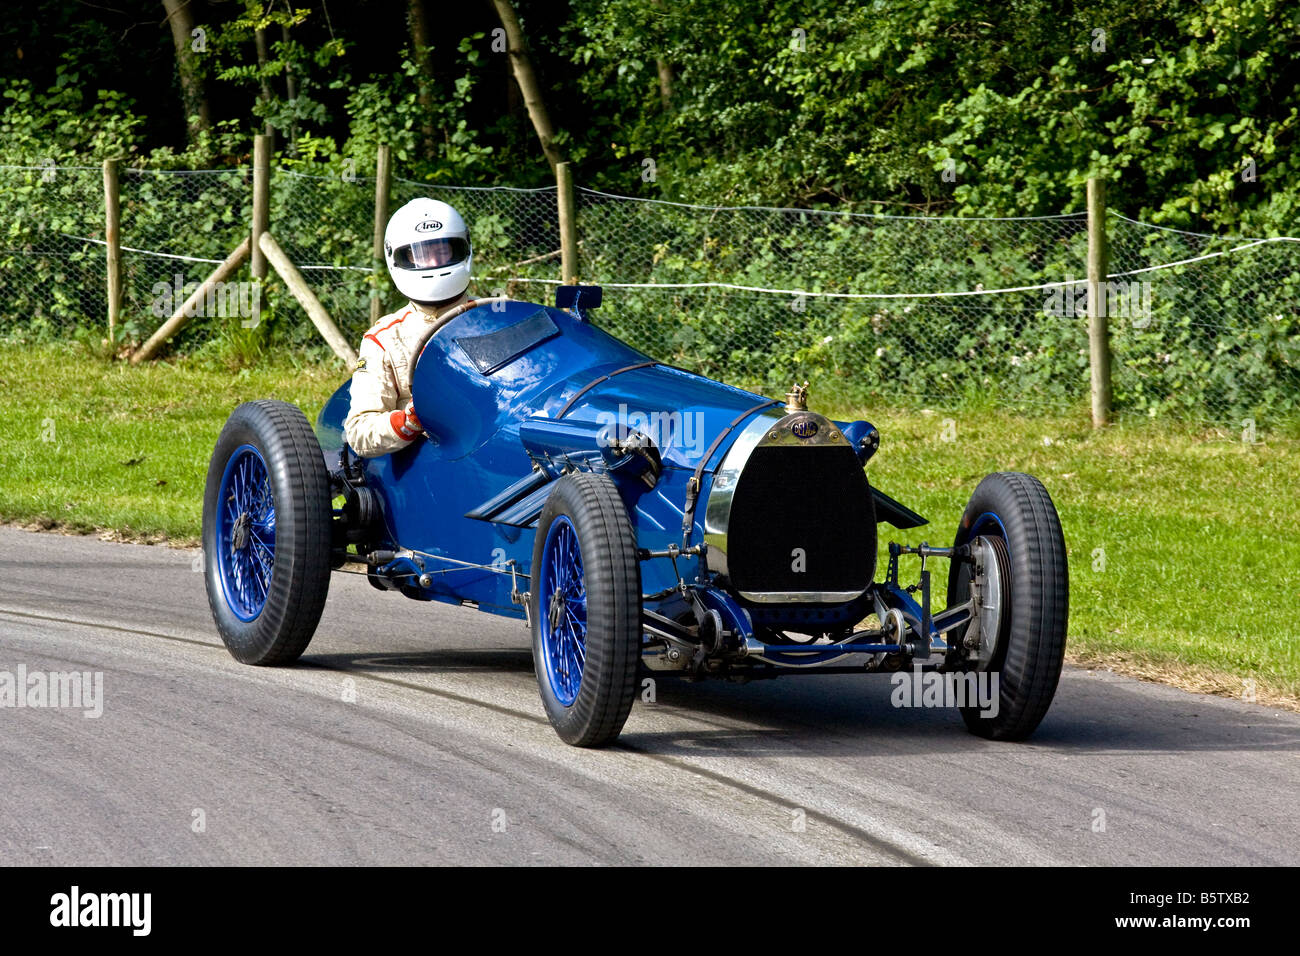 1923 Delage Bequet with driver Alexander Boswell at the 2008 Goodwood Festival of Speed, Sussex, UK. - Stock Image